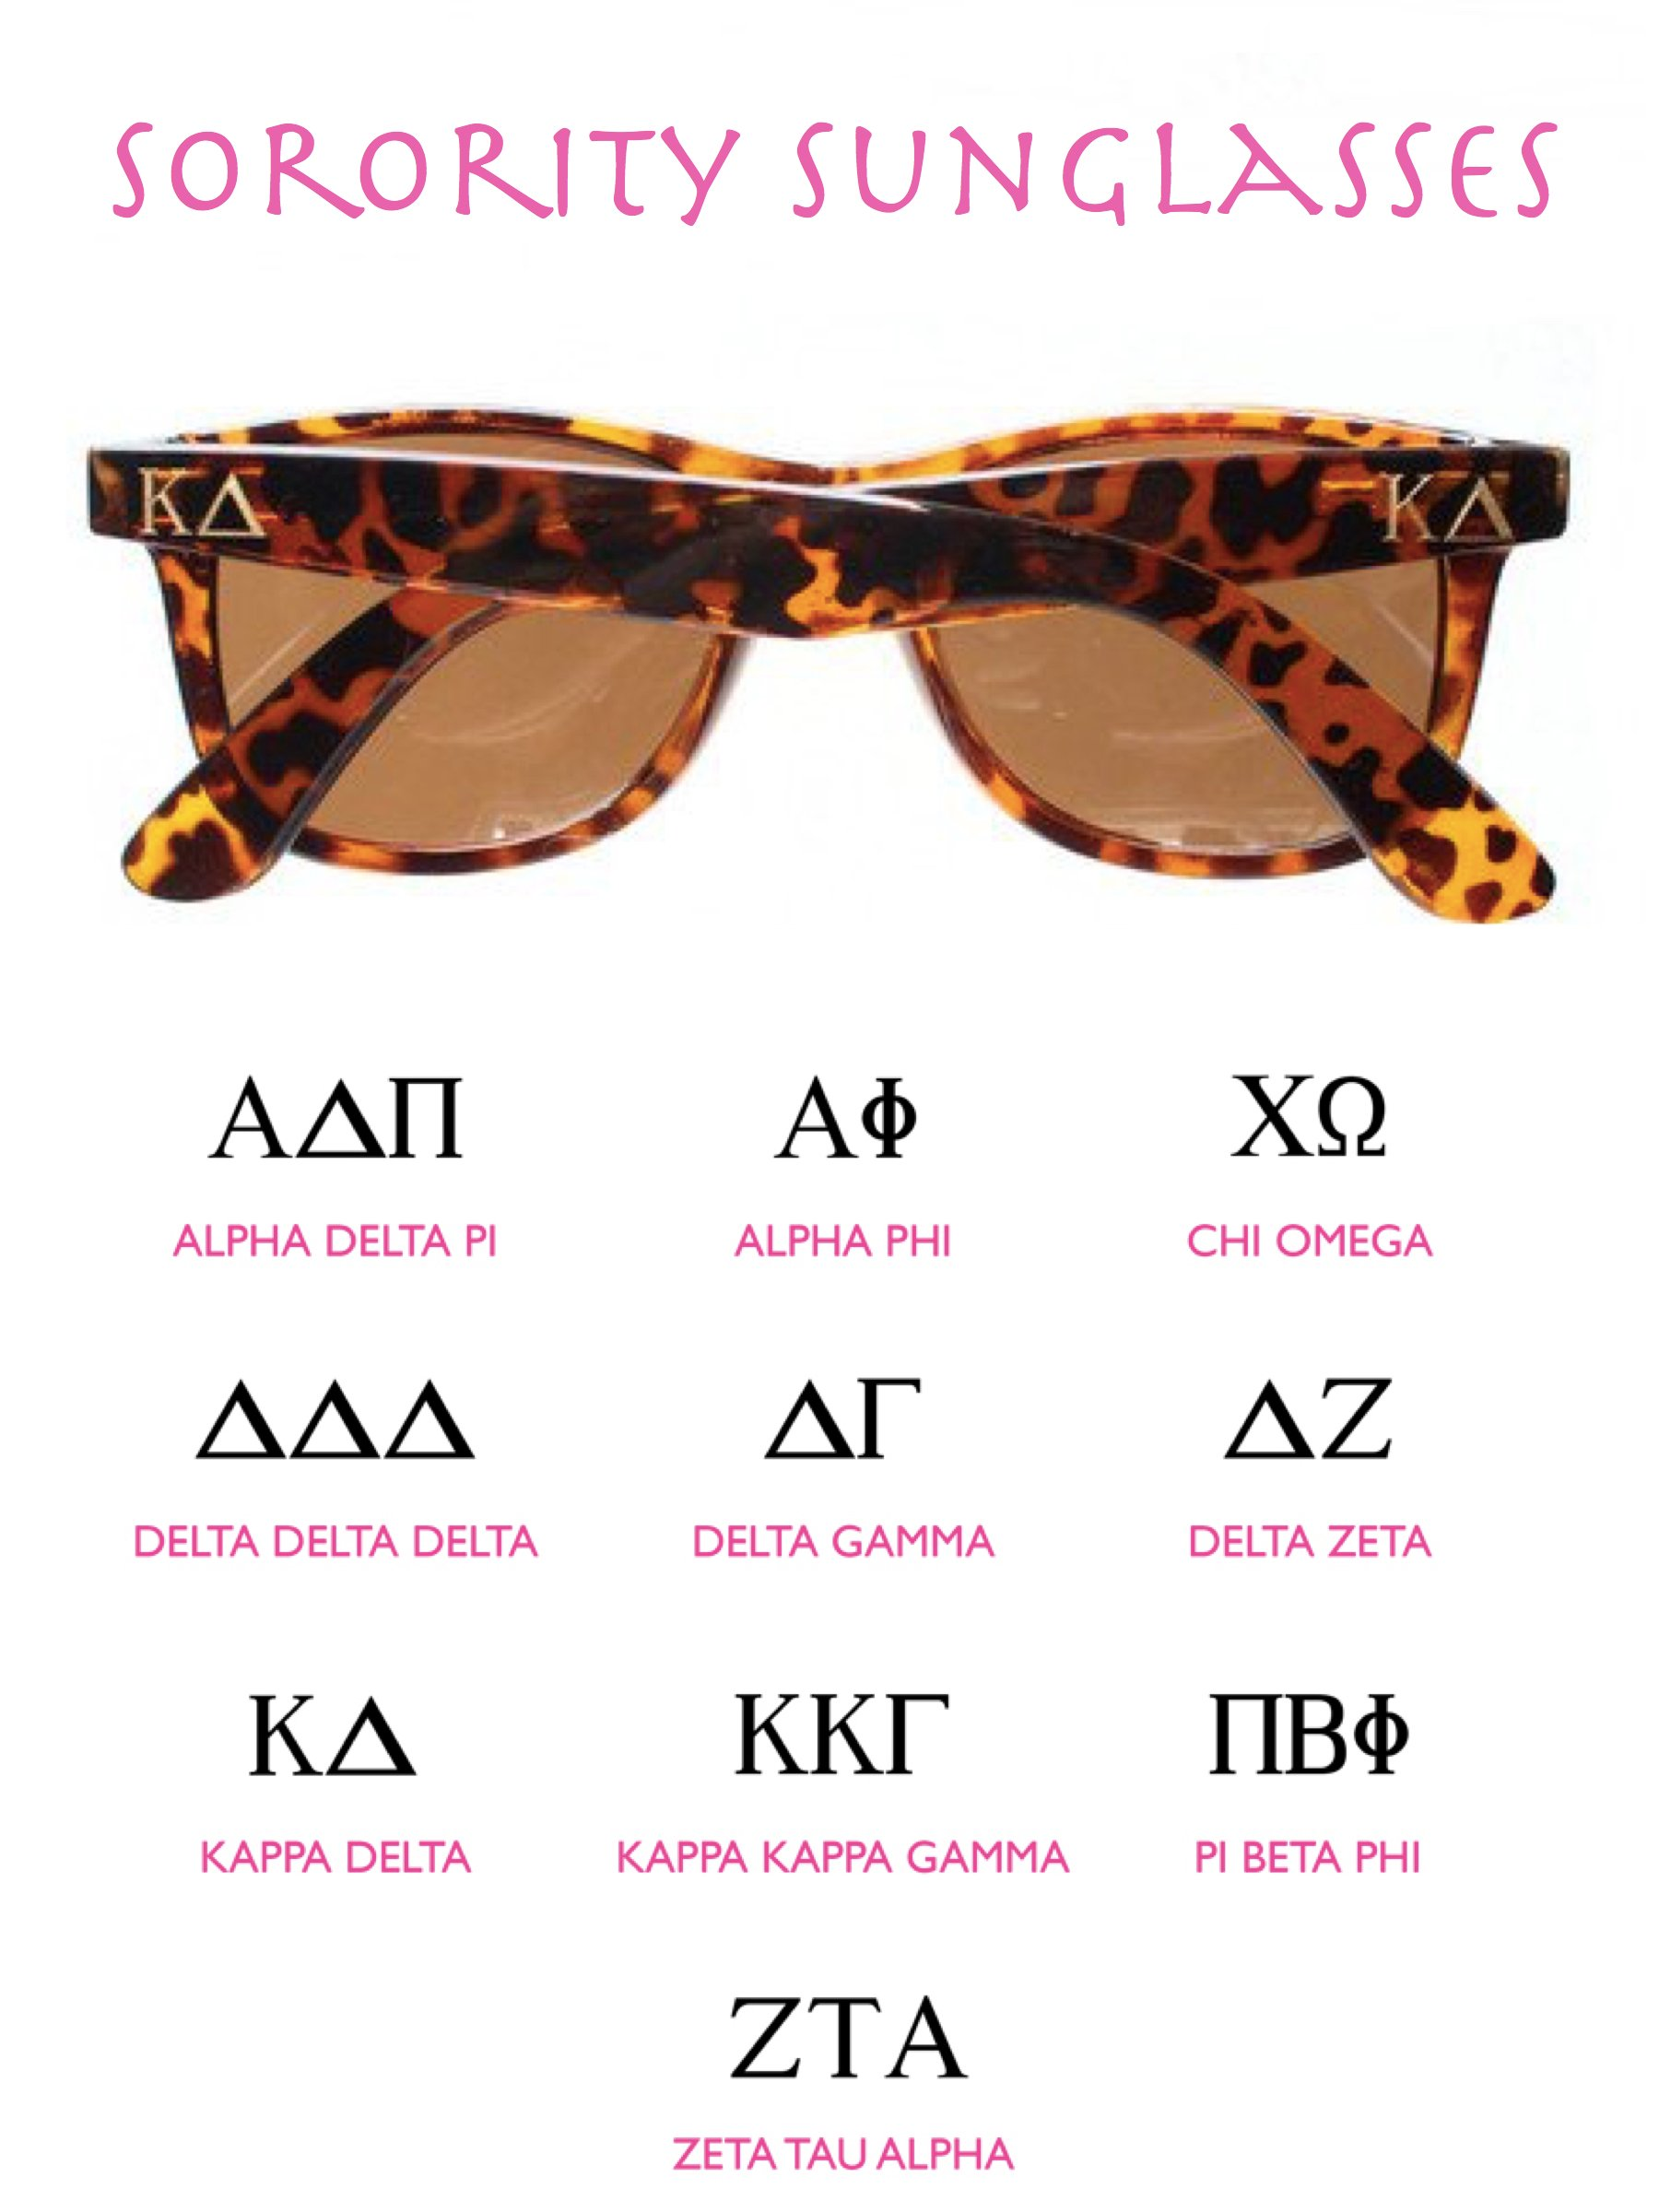 Sorority Sunglasses